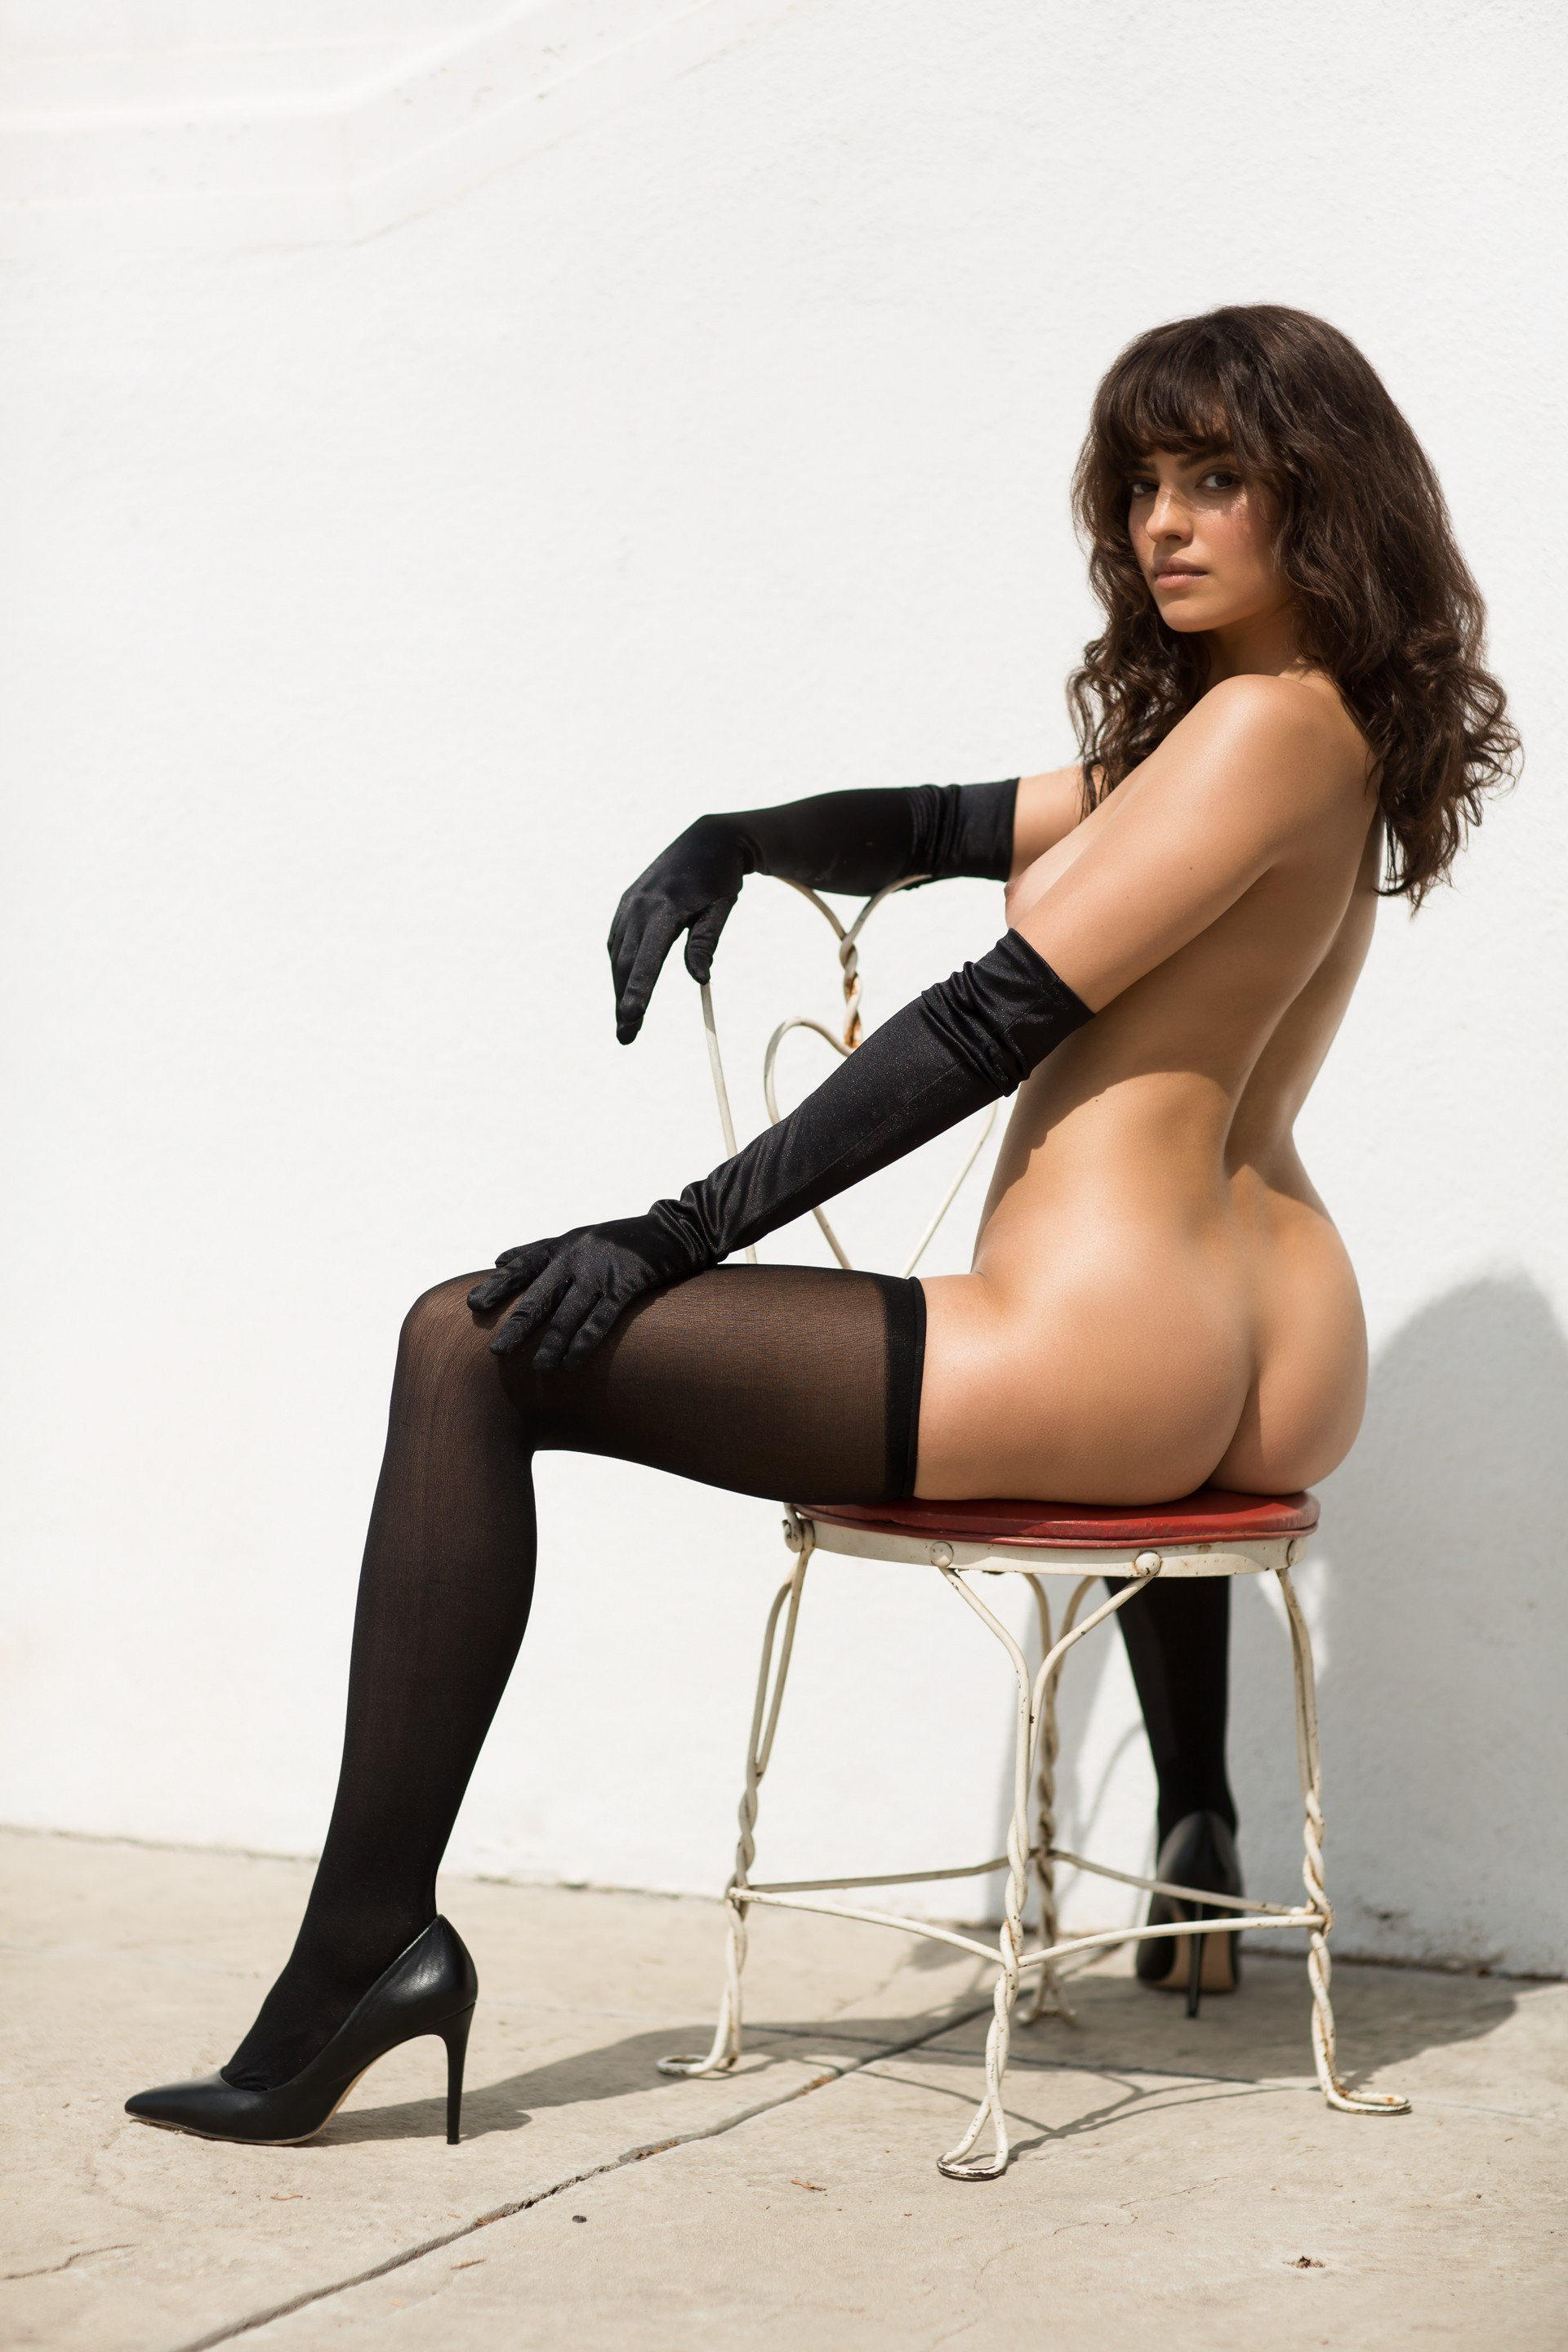 naked (19 photos), Fappening Celebrity pictures